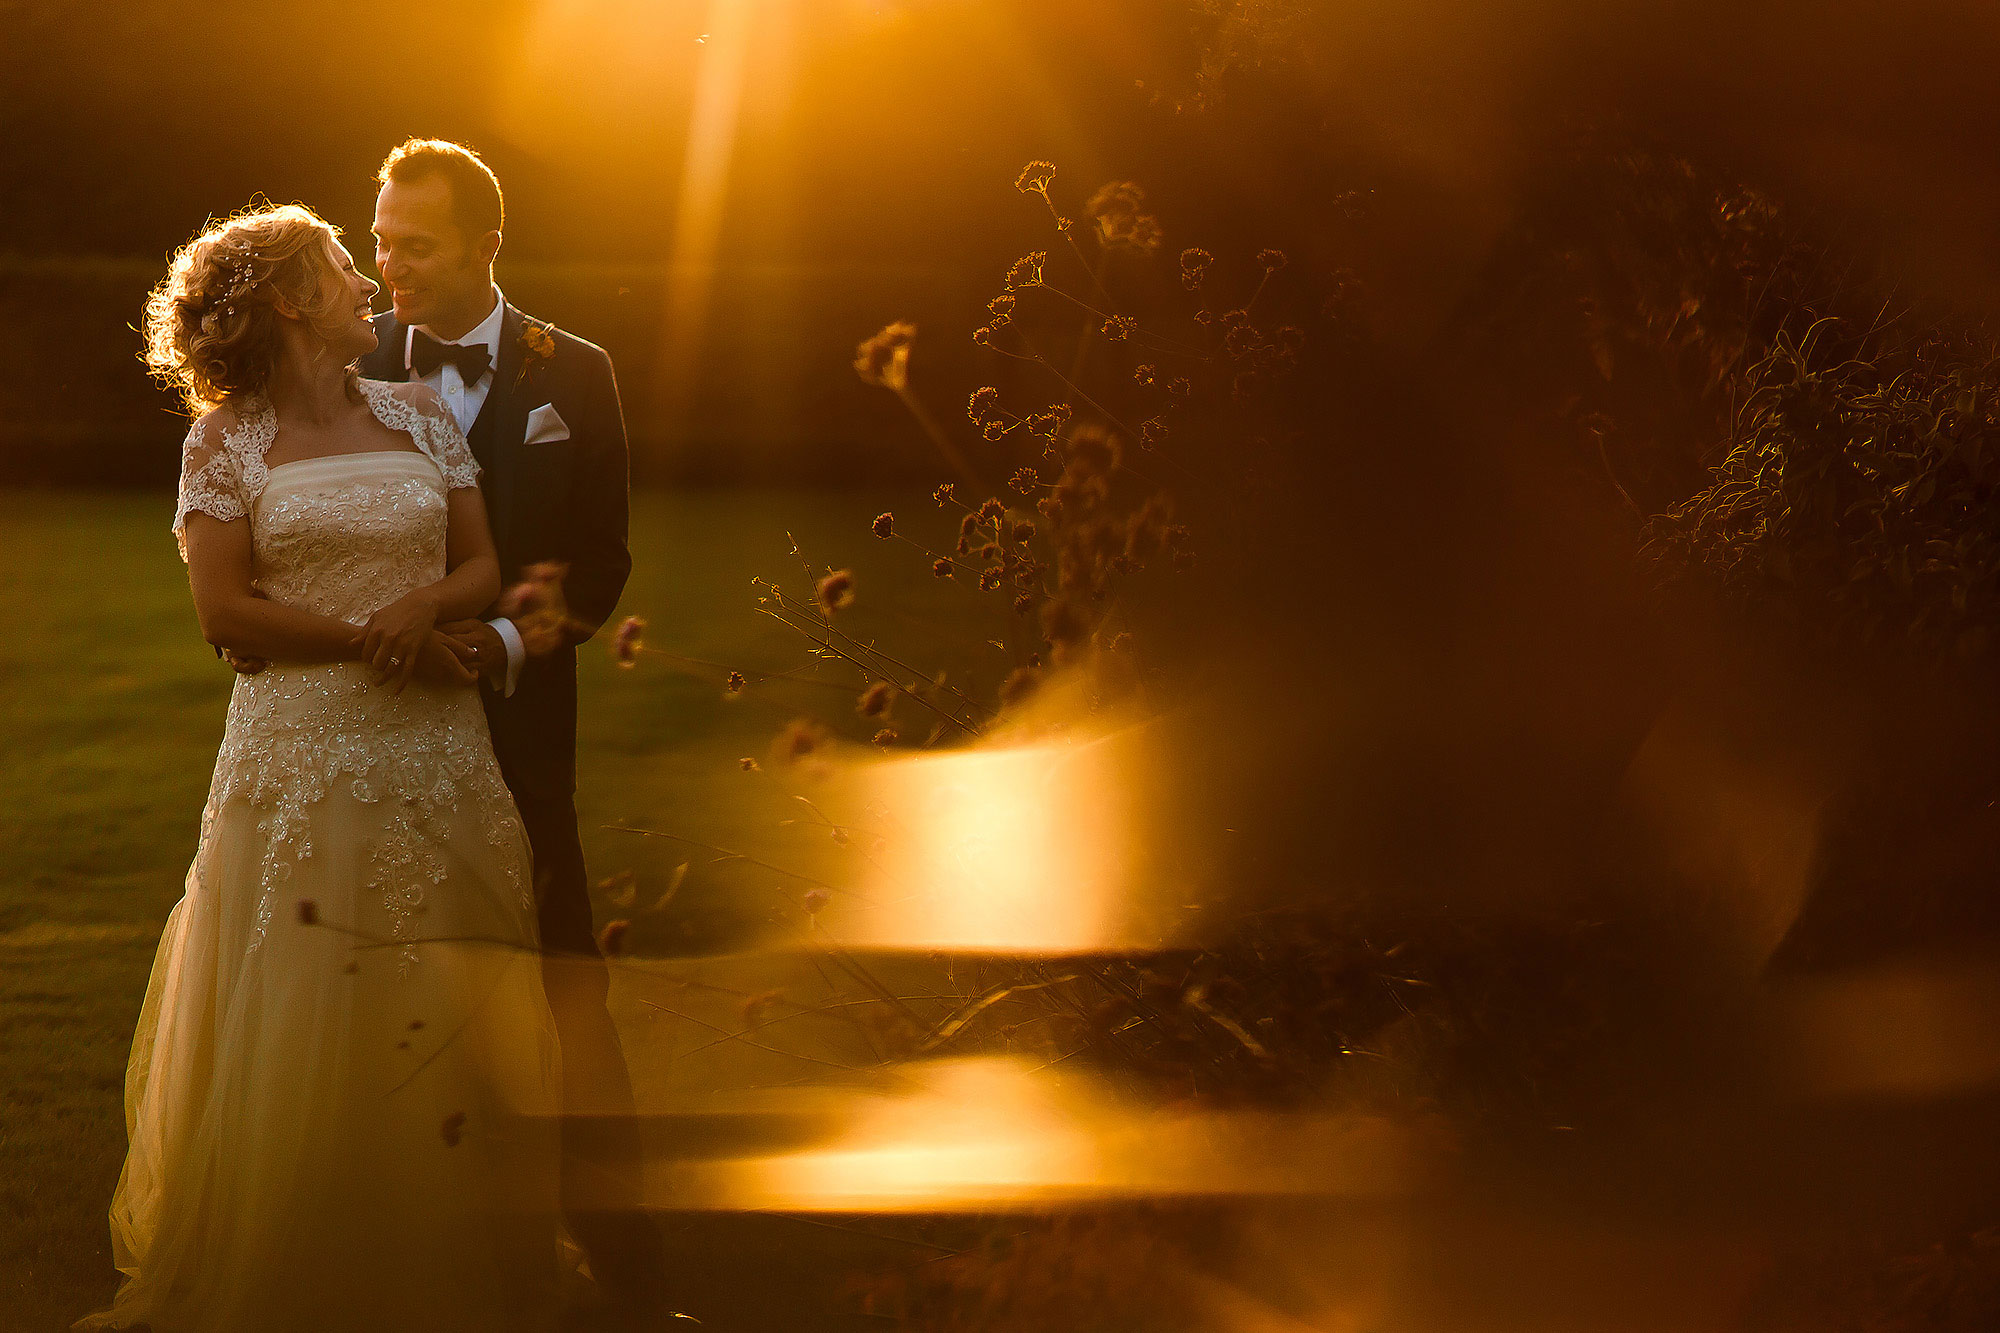 Sunset wedding photographs in the gardens of Combermere Abbey